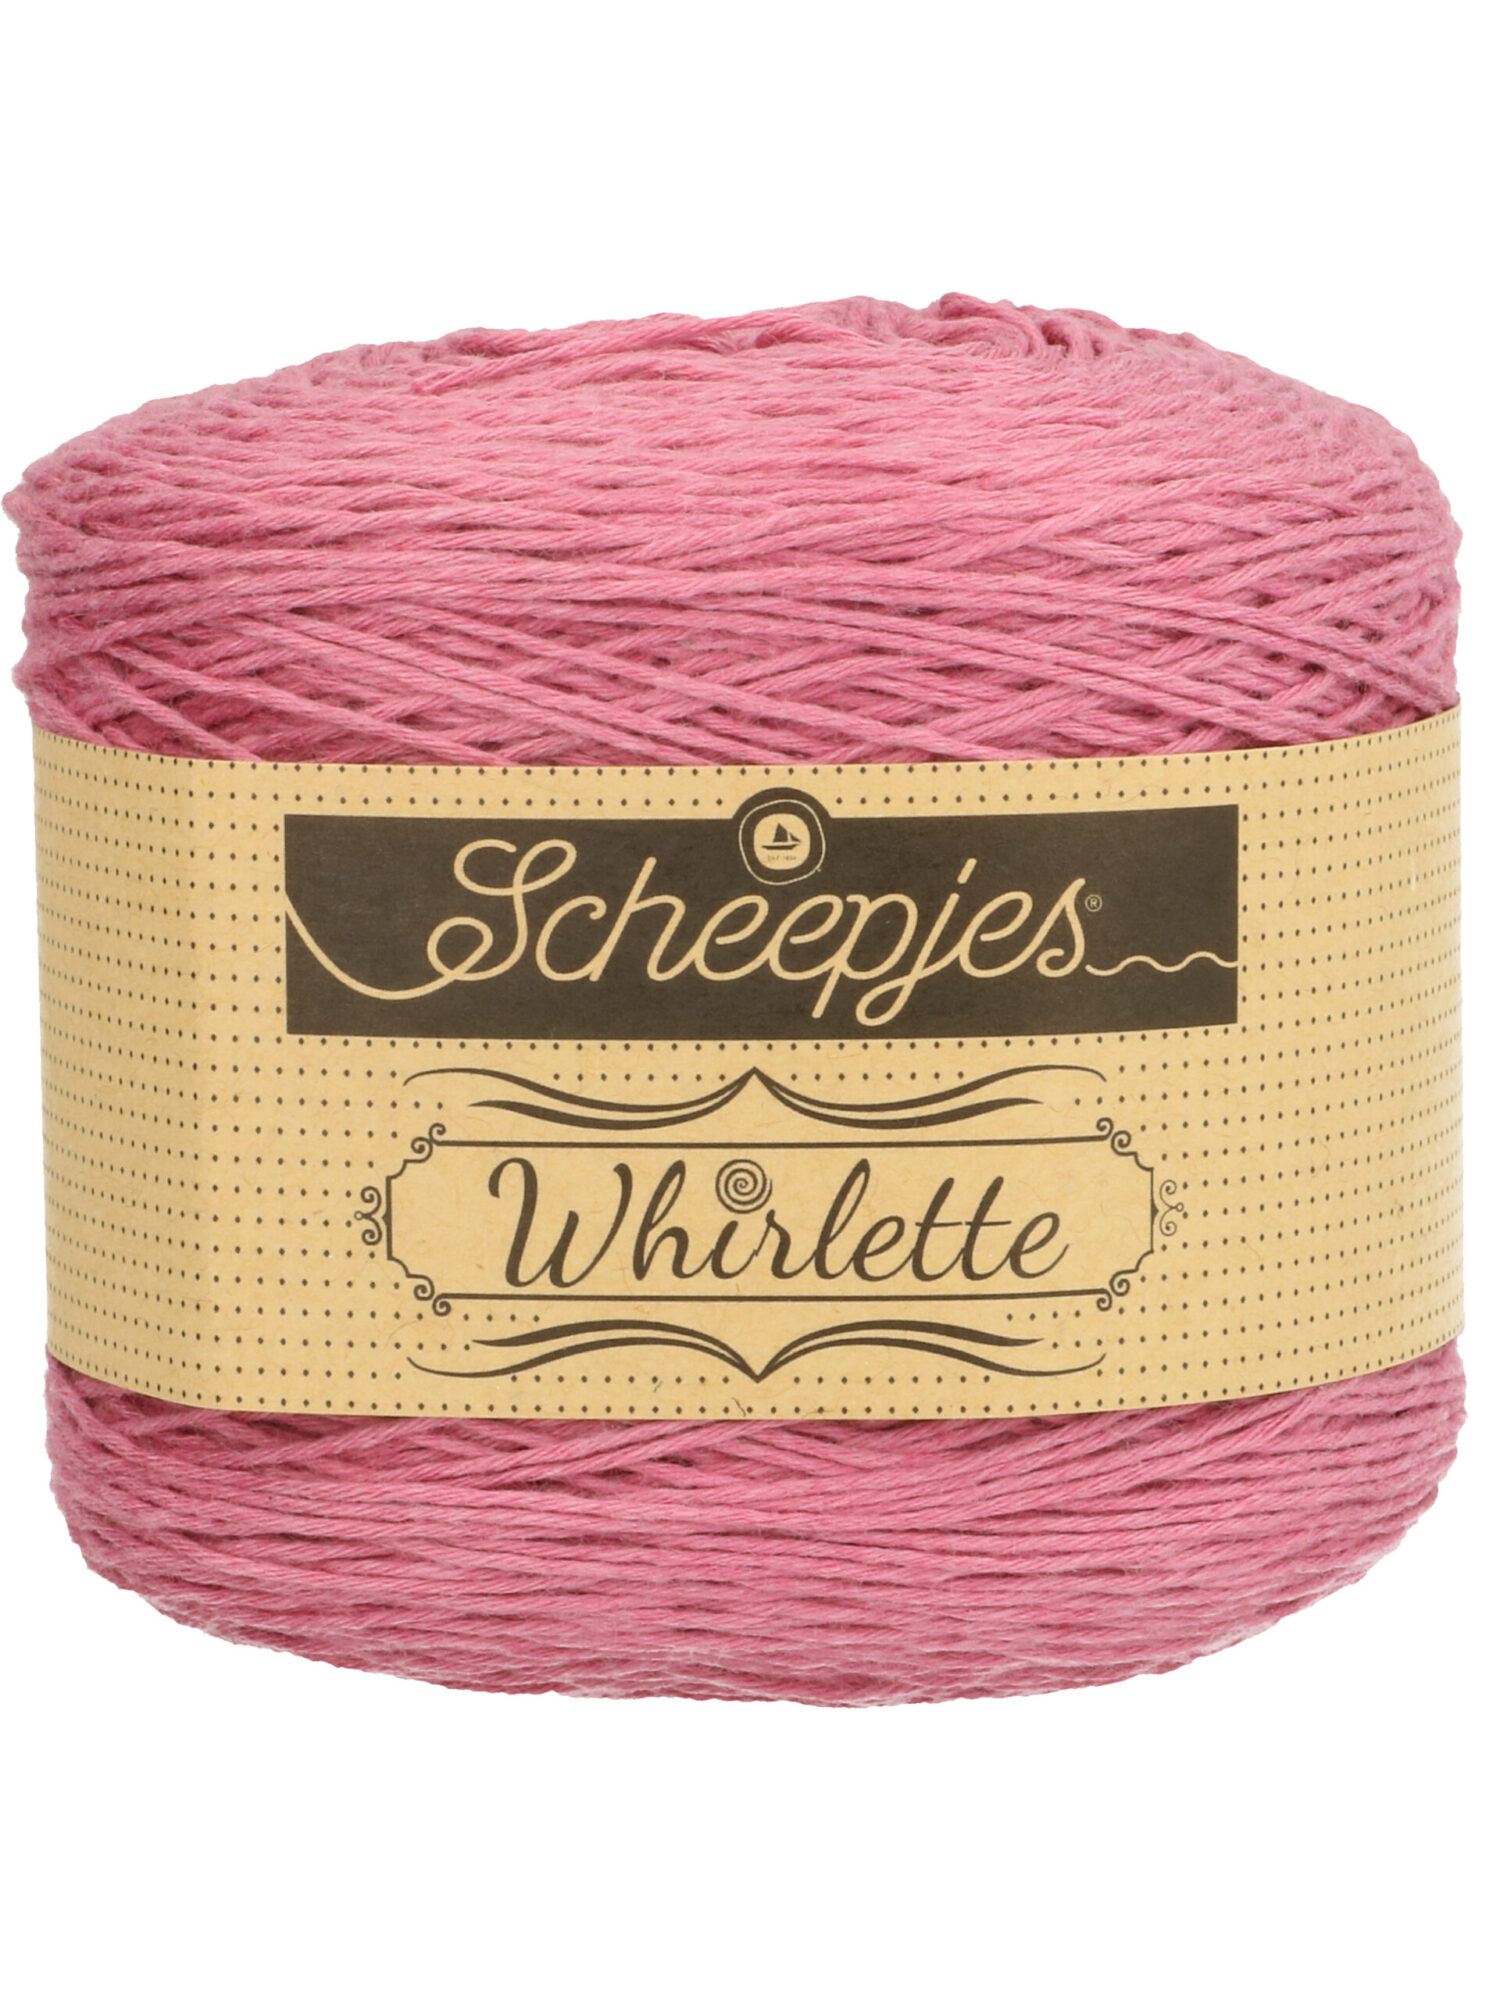 Scheepjes Whirlette product image